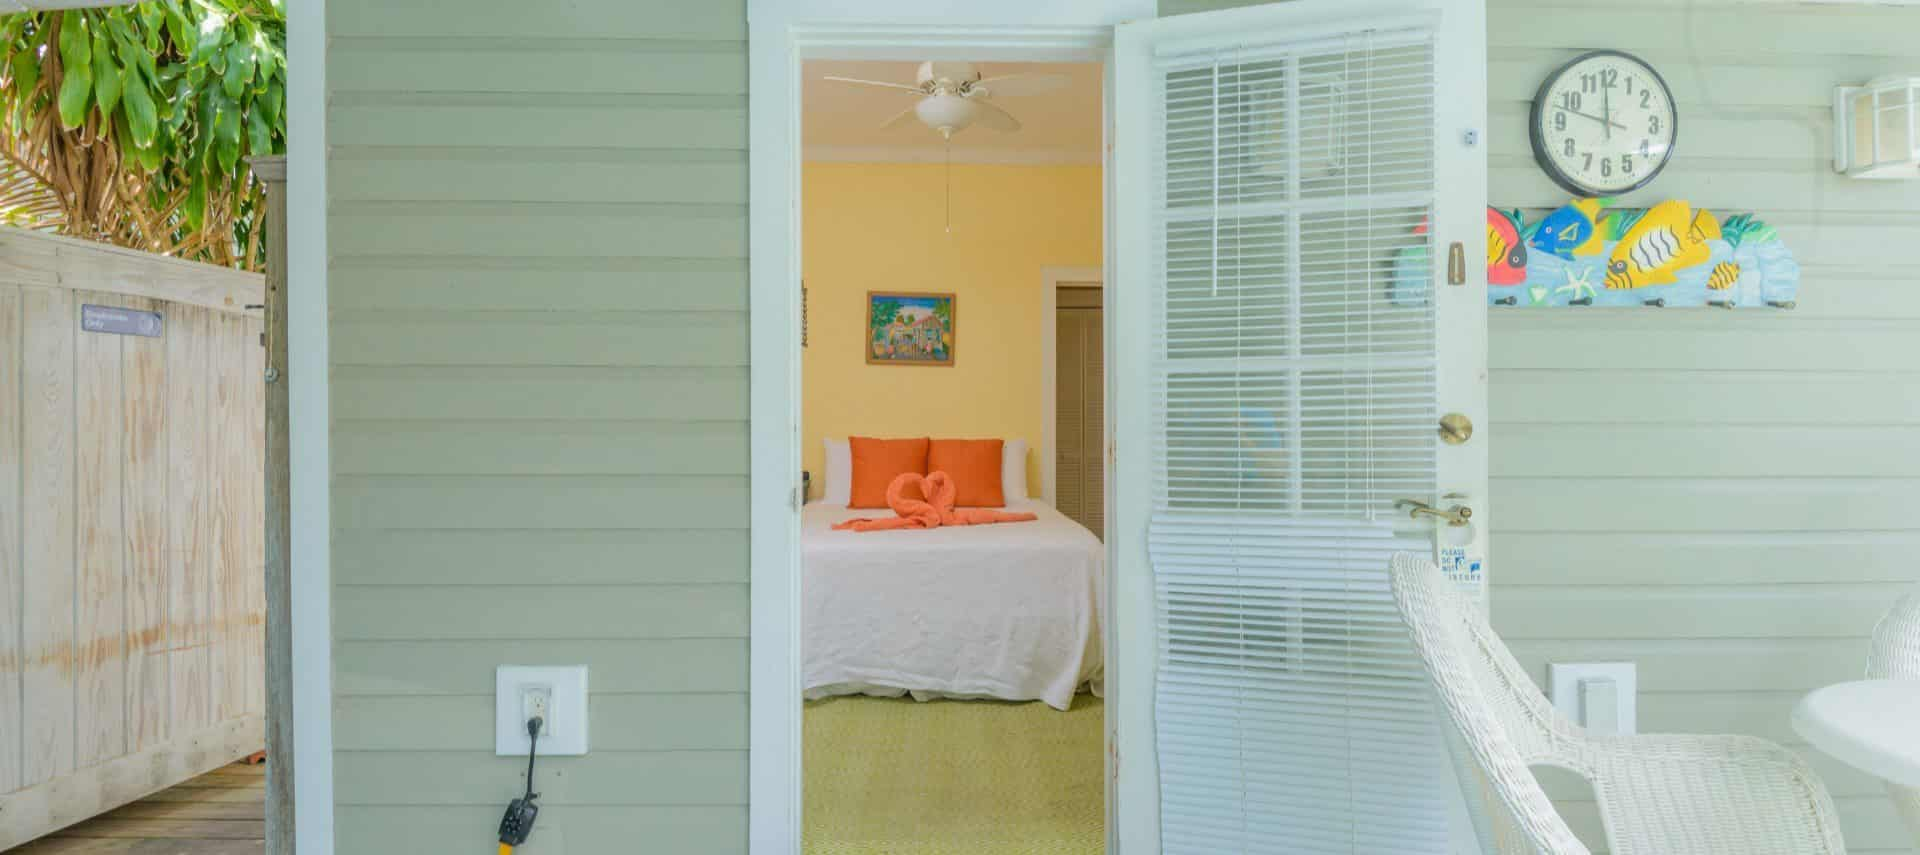 View into bedroom with yellow walls, white trim, bed with white linens and orange accent pillows, and two orange swan-shaped towels on the bed